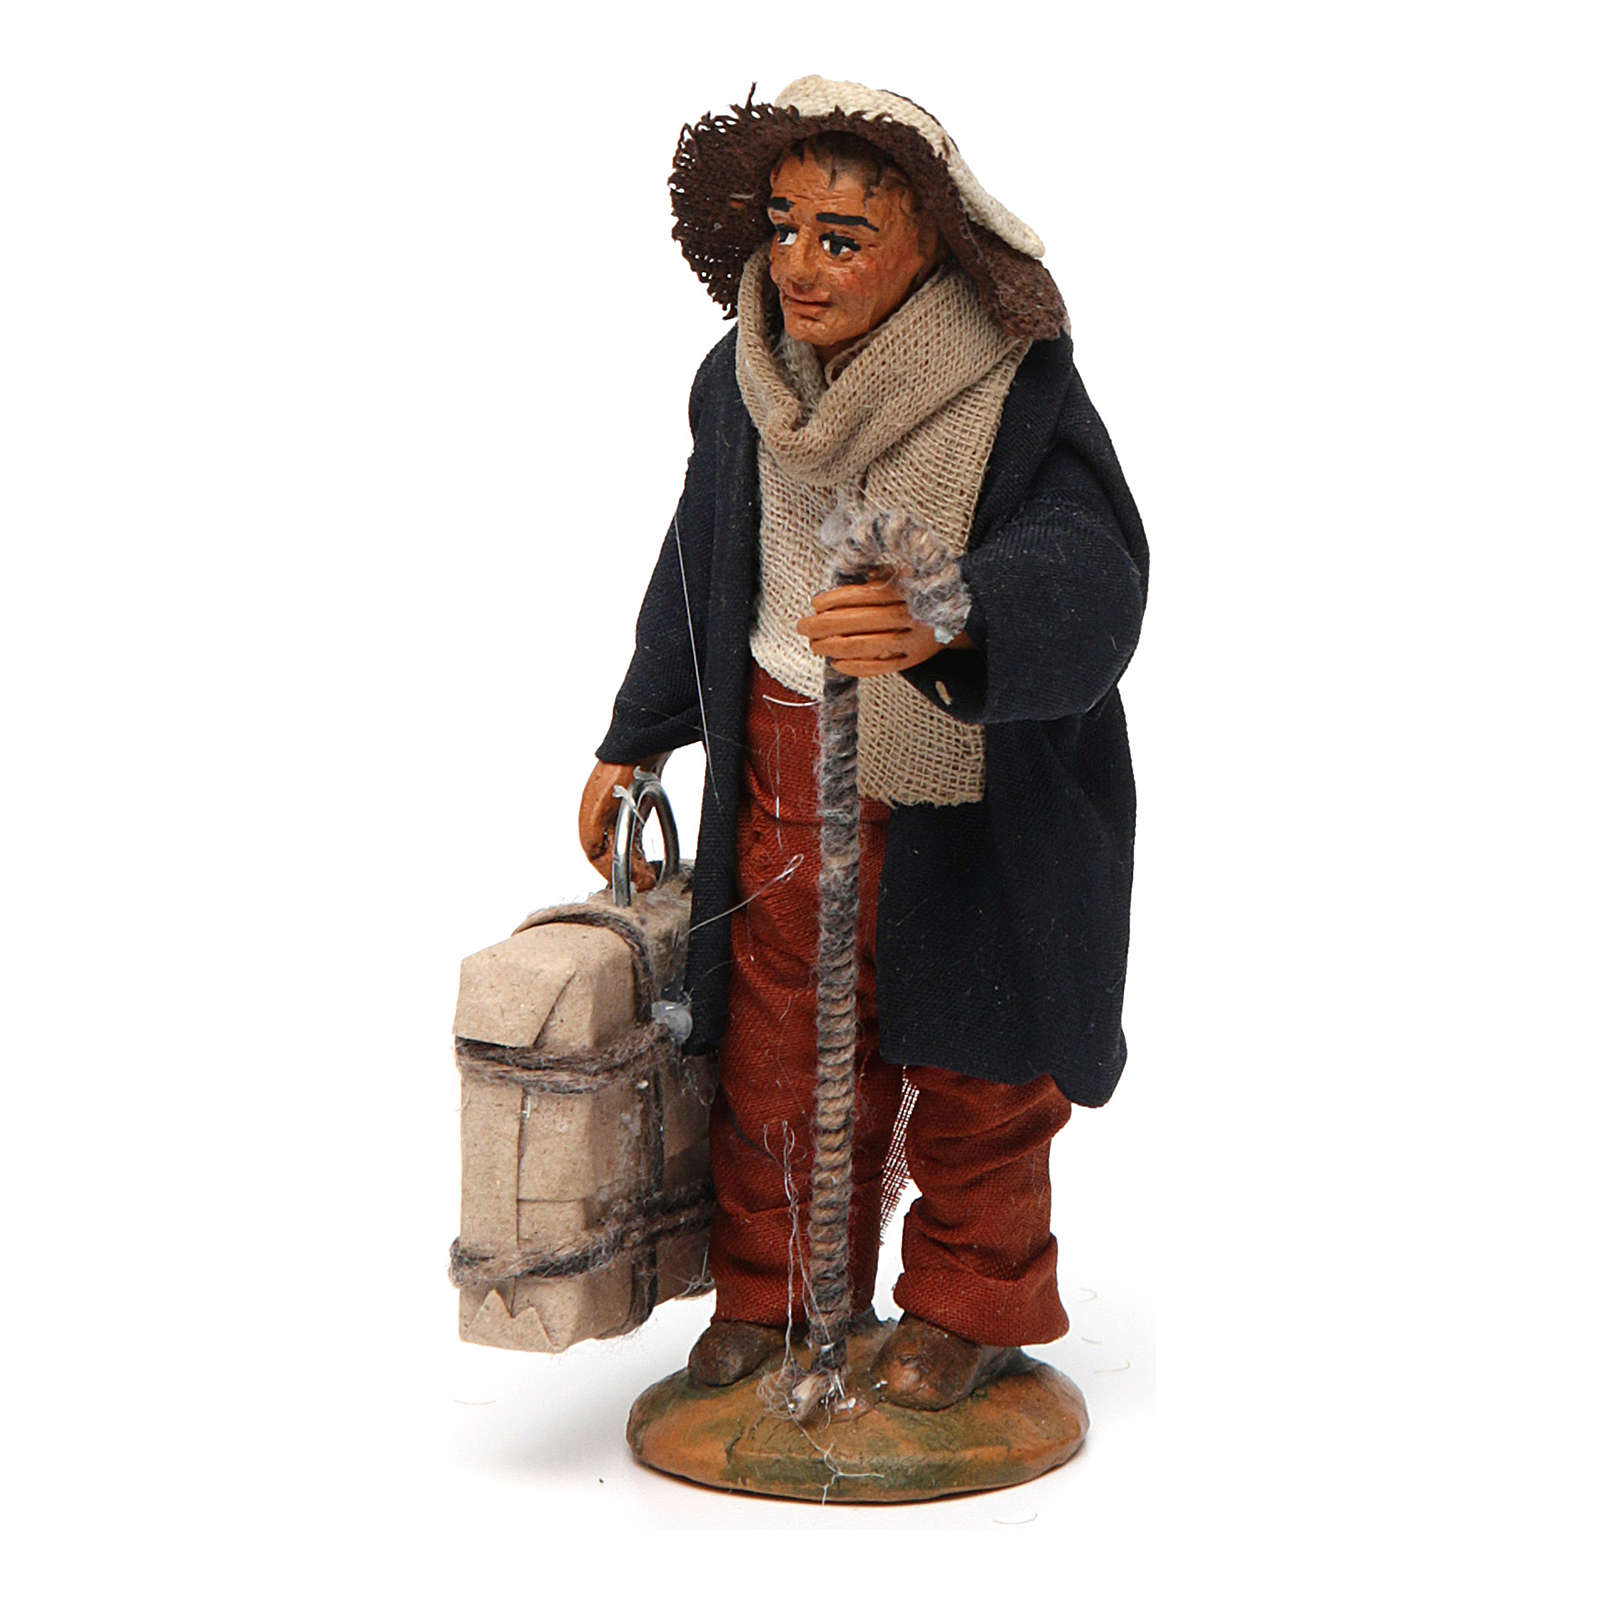 Neapolitan nativity scene statue man with suitcase 10 cm 4